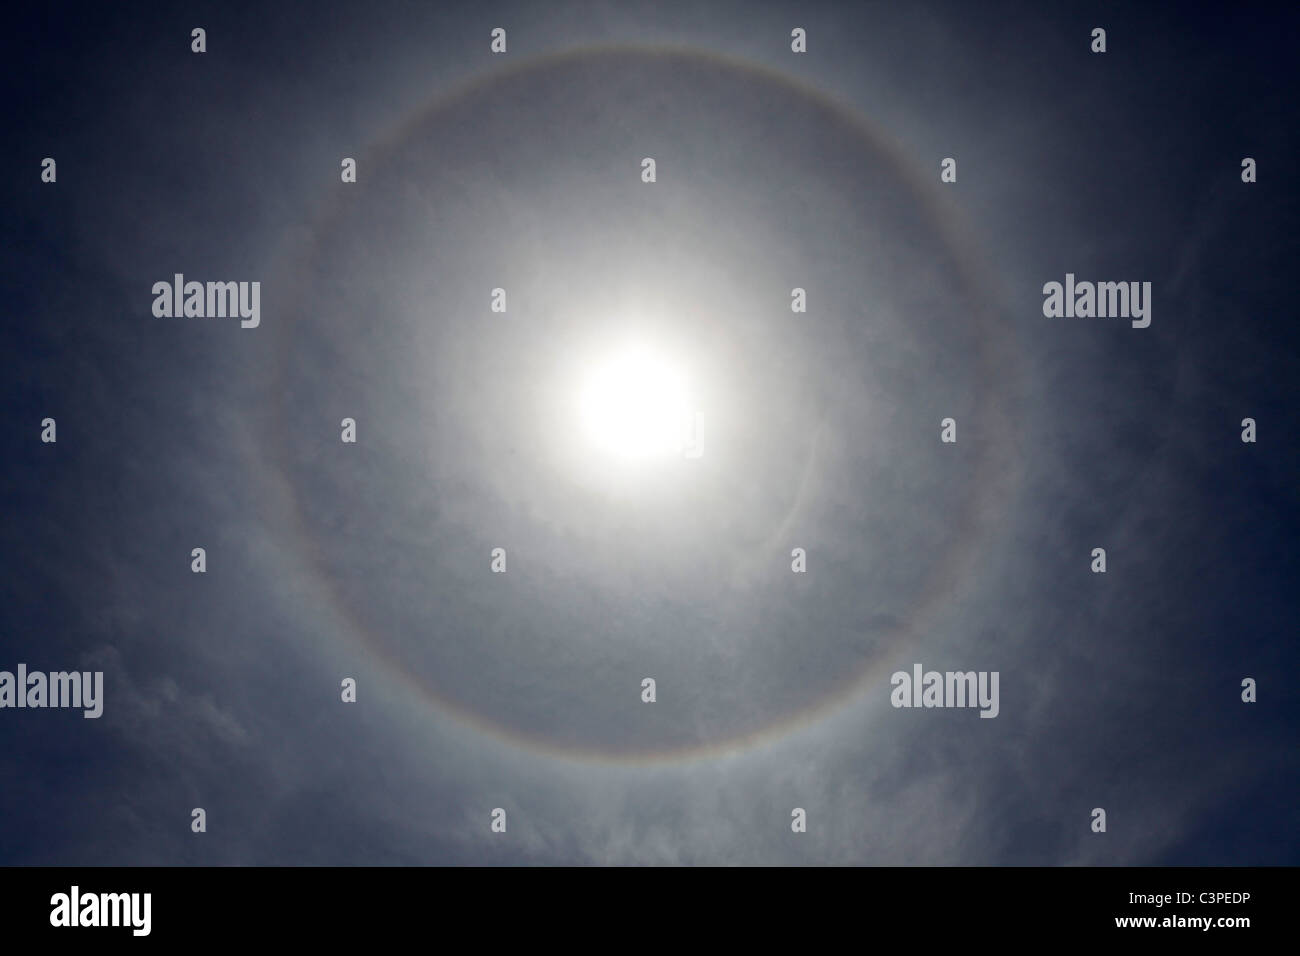 A halo appears around the sun. - Stock Image